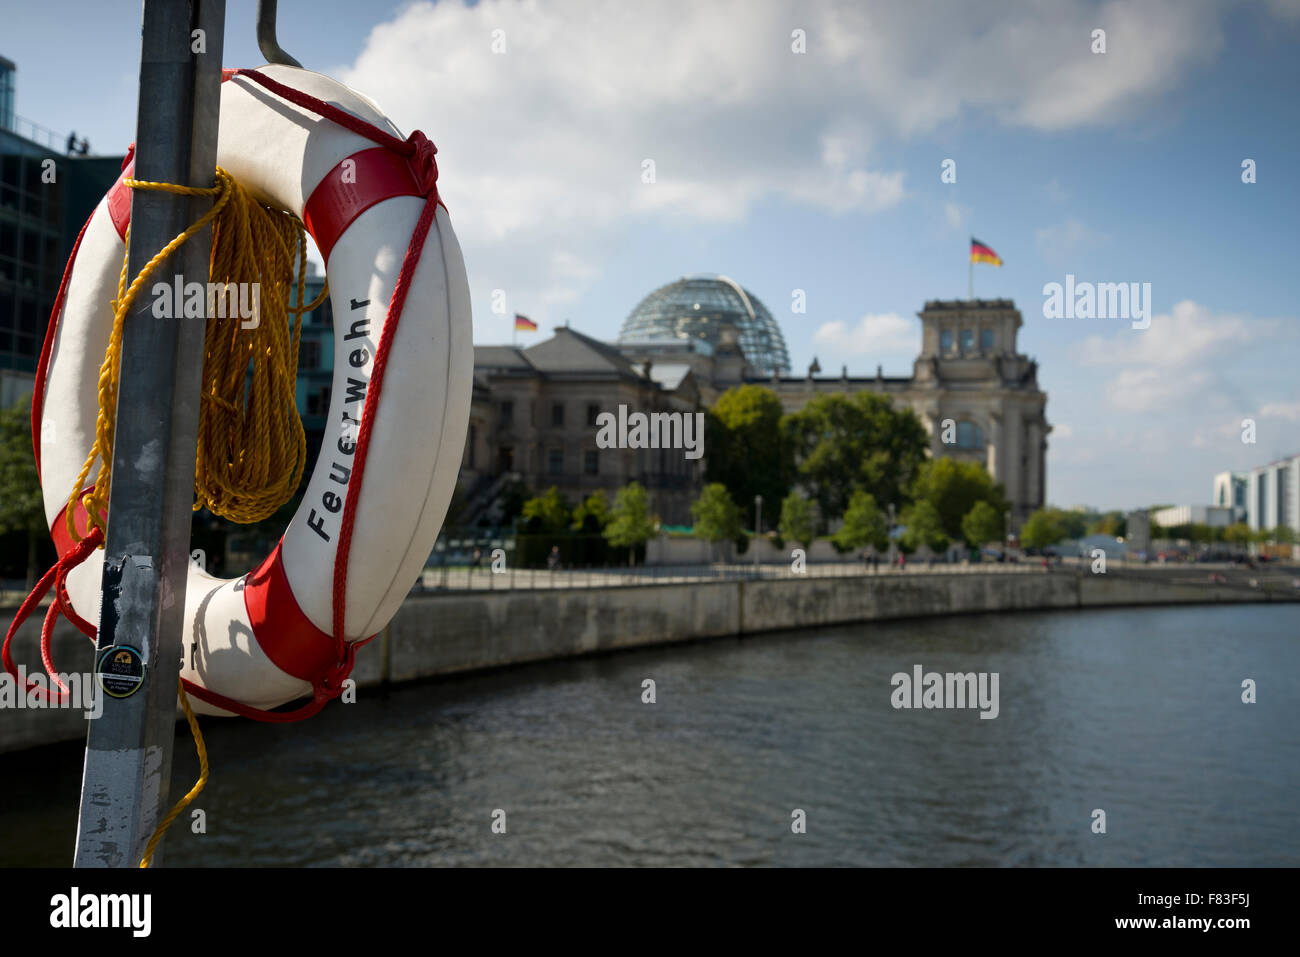 Feuerwehr (Fire brigade) on a lifebelt or lifebuoy on a bridge over the river Spree with the German Reichstag in - Stock Image